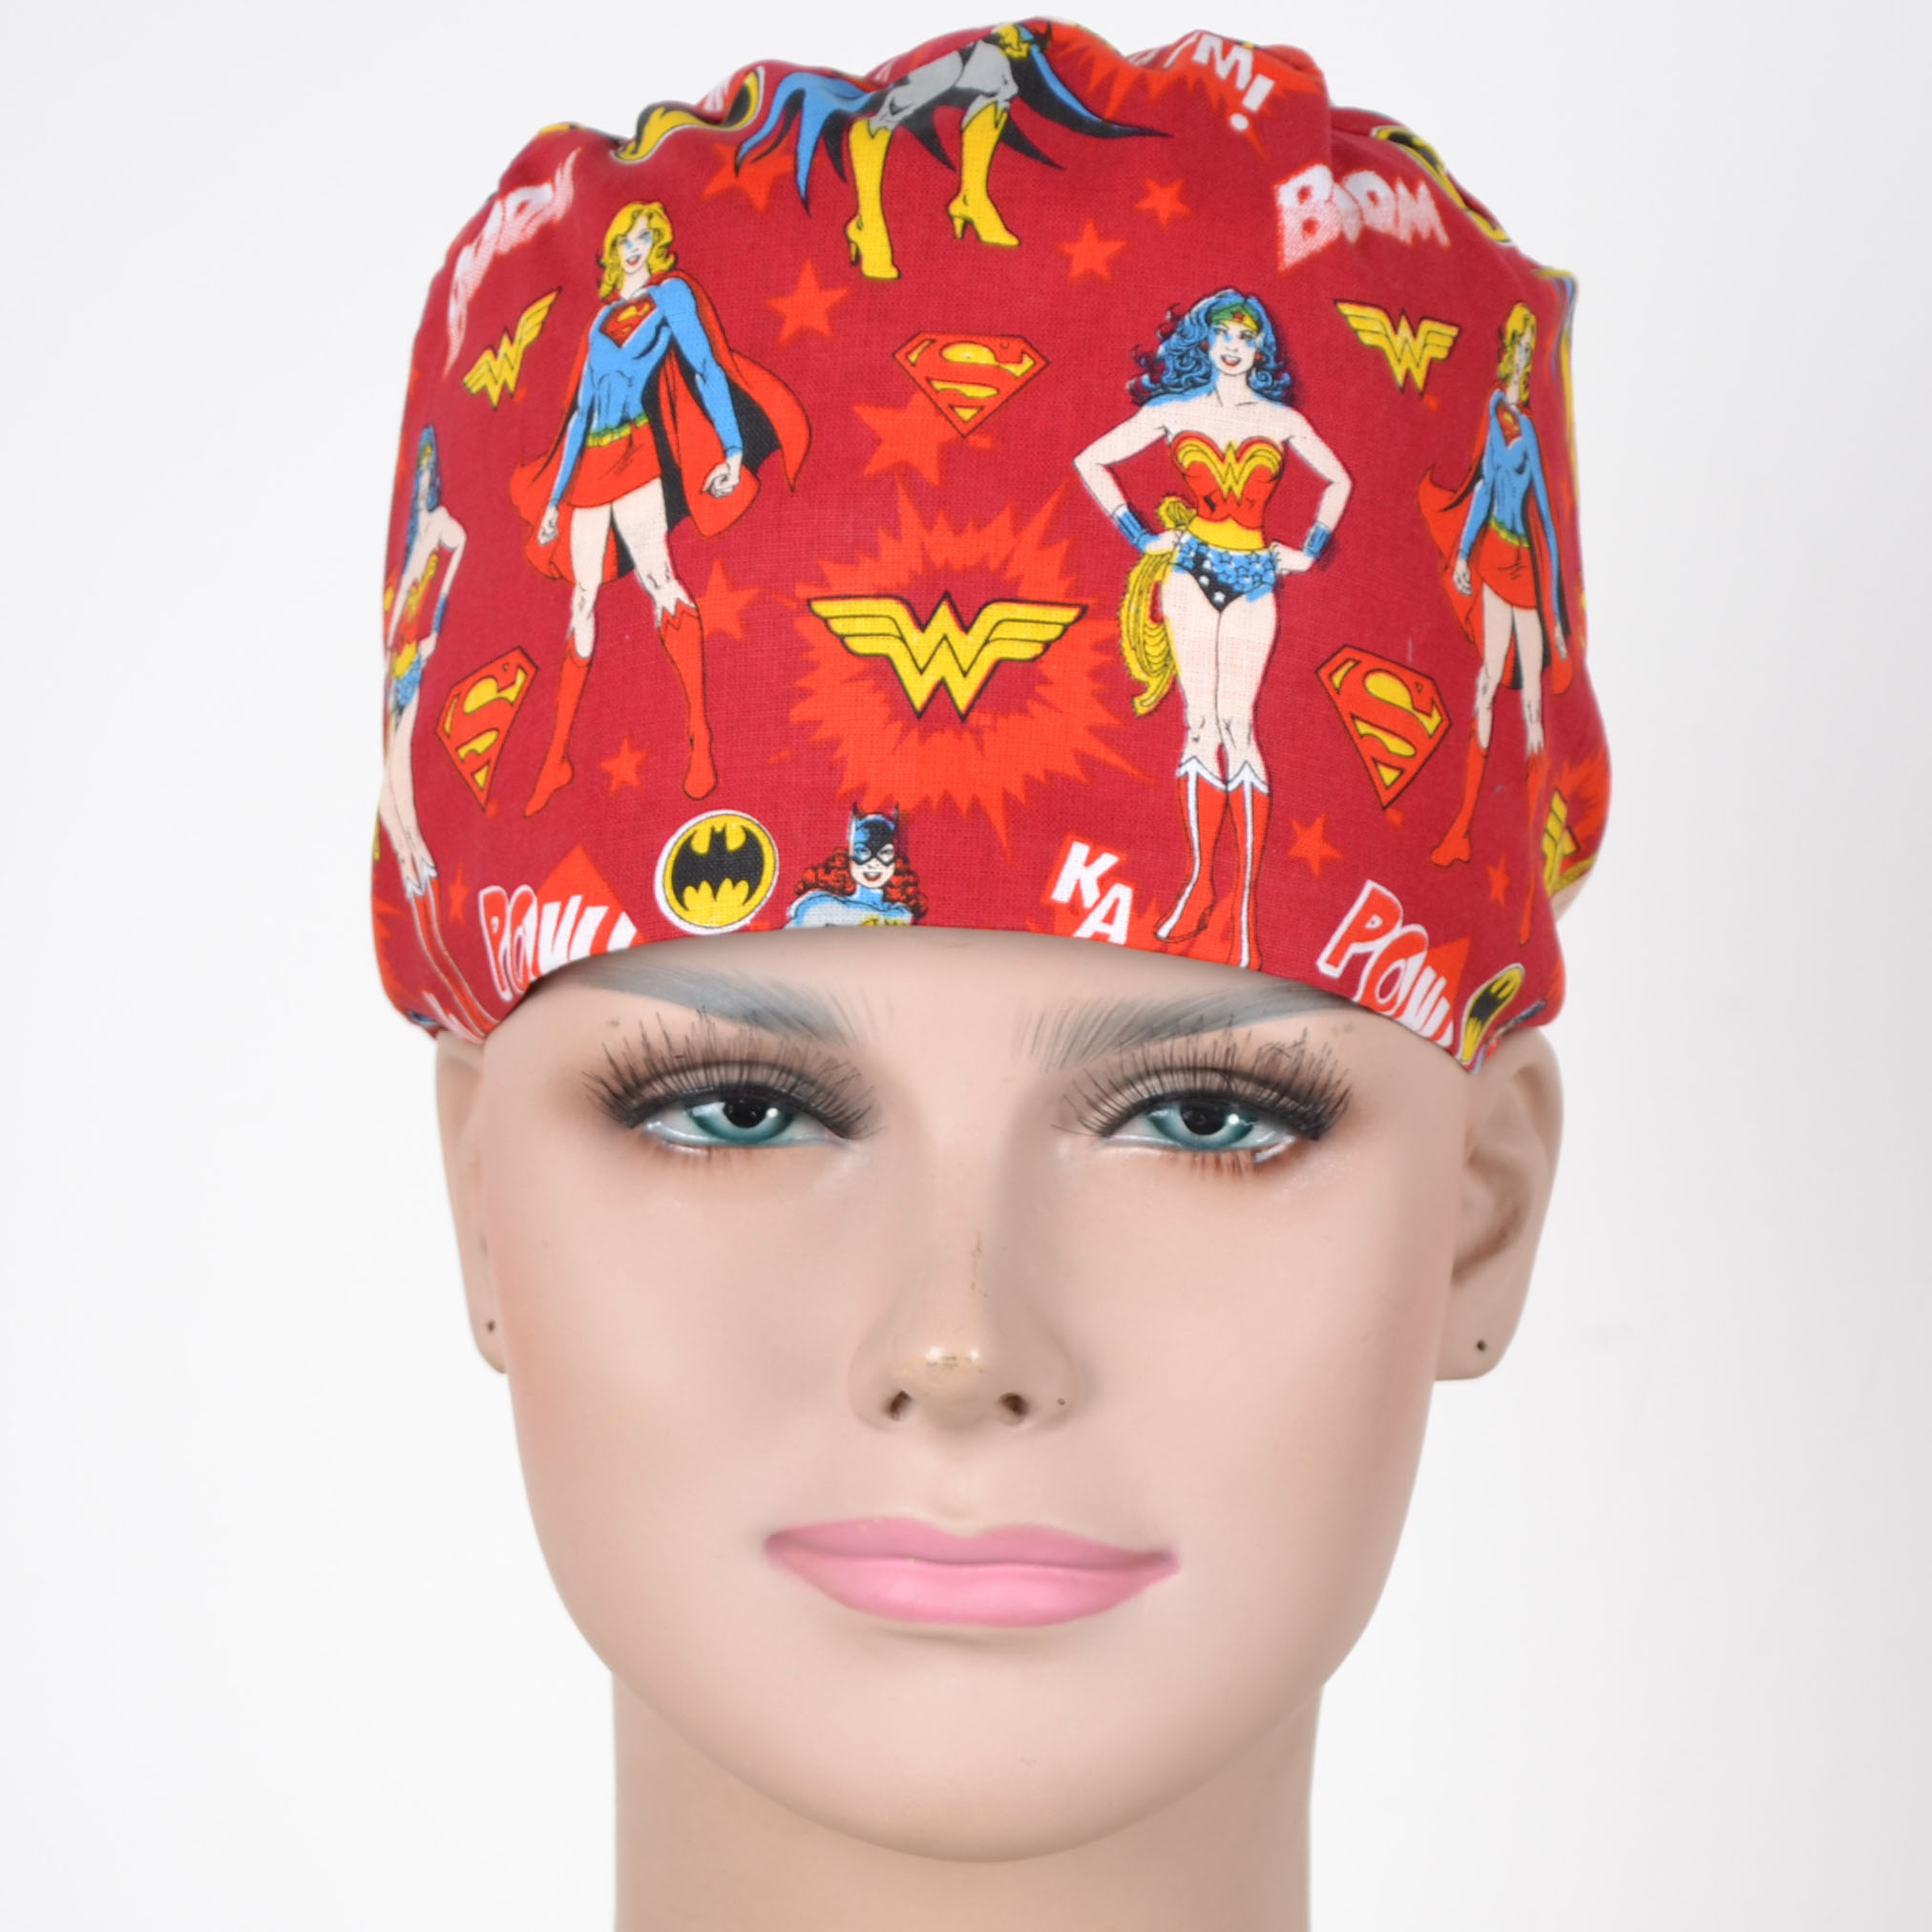 Women Medical  Caps 100% Cotton  In Red With Cartoon Prints Surgical Caps With 2 Sizes ,masks Are Available